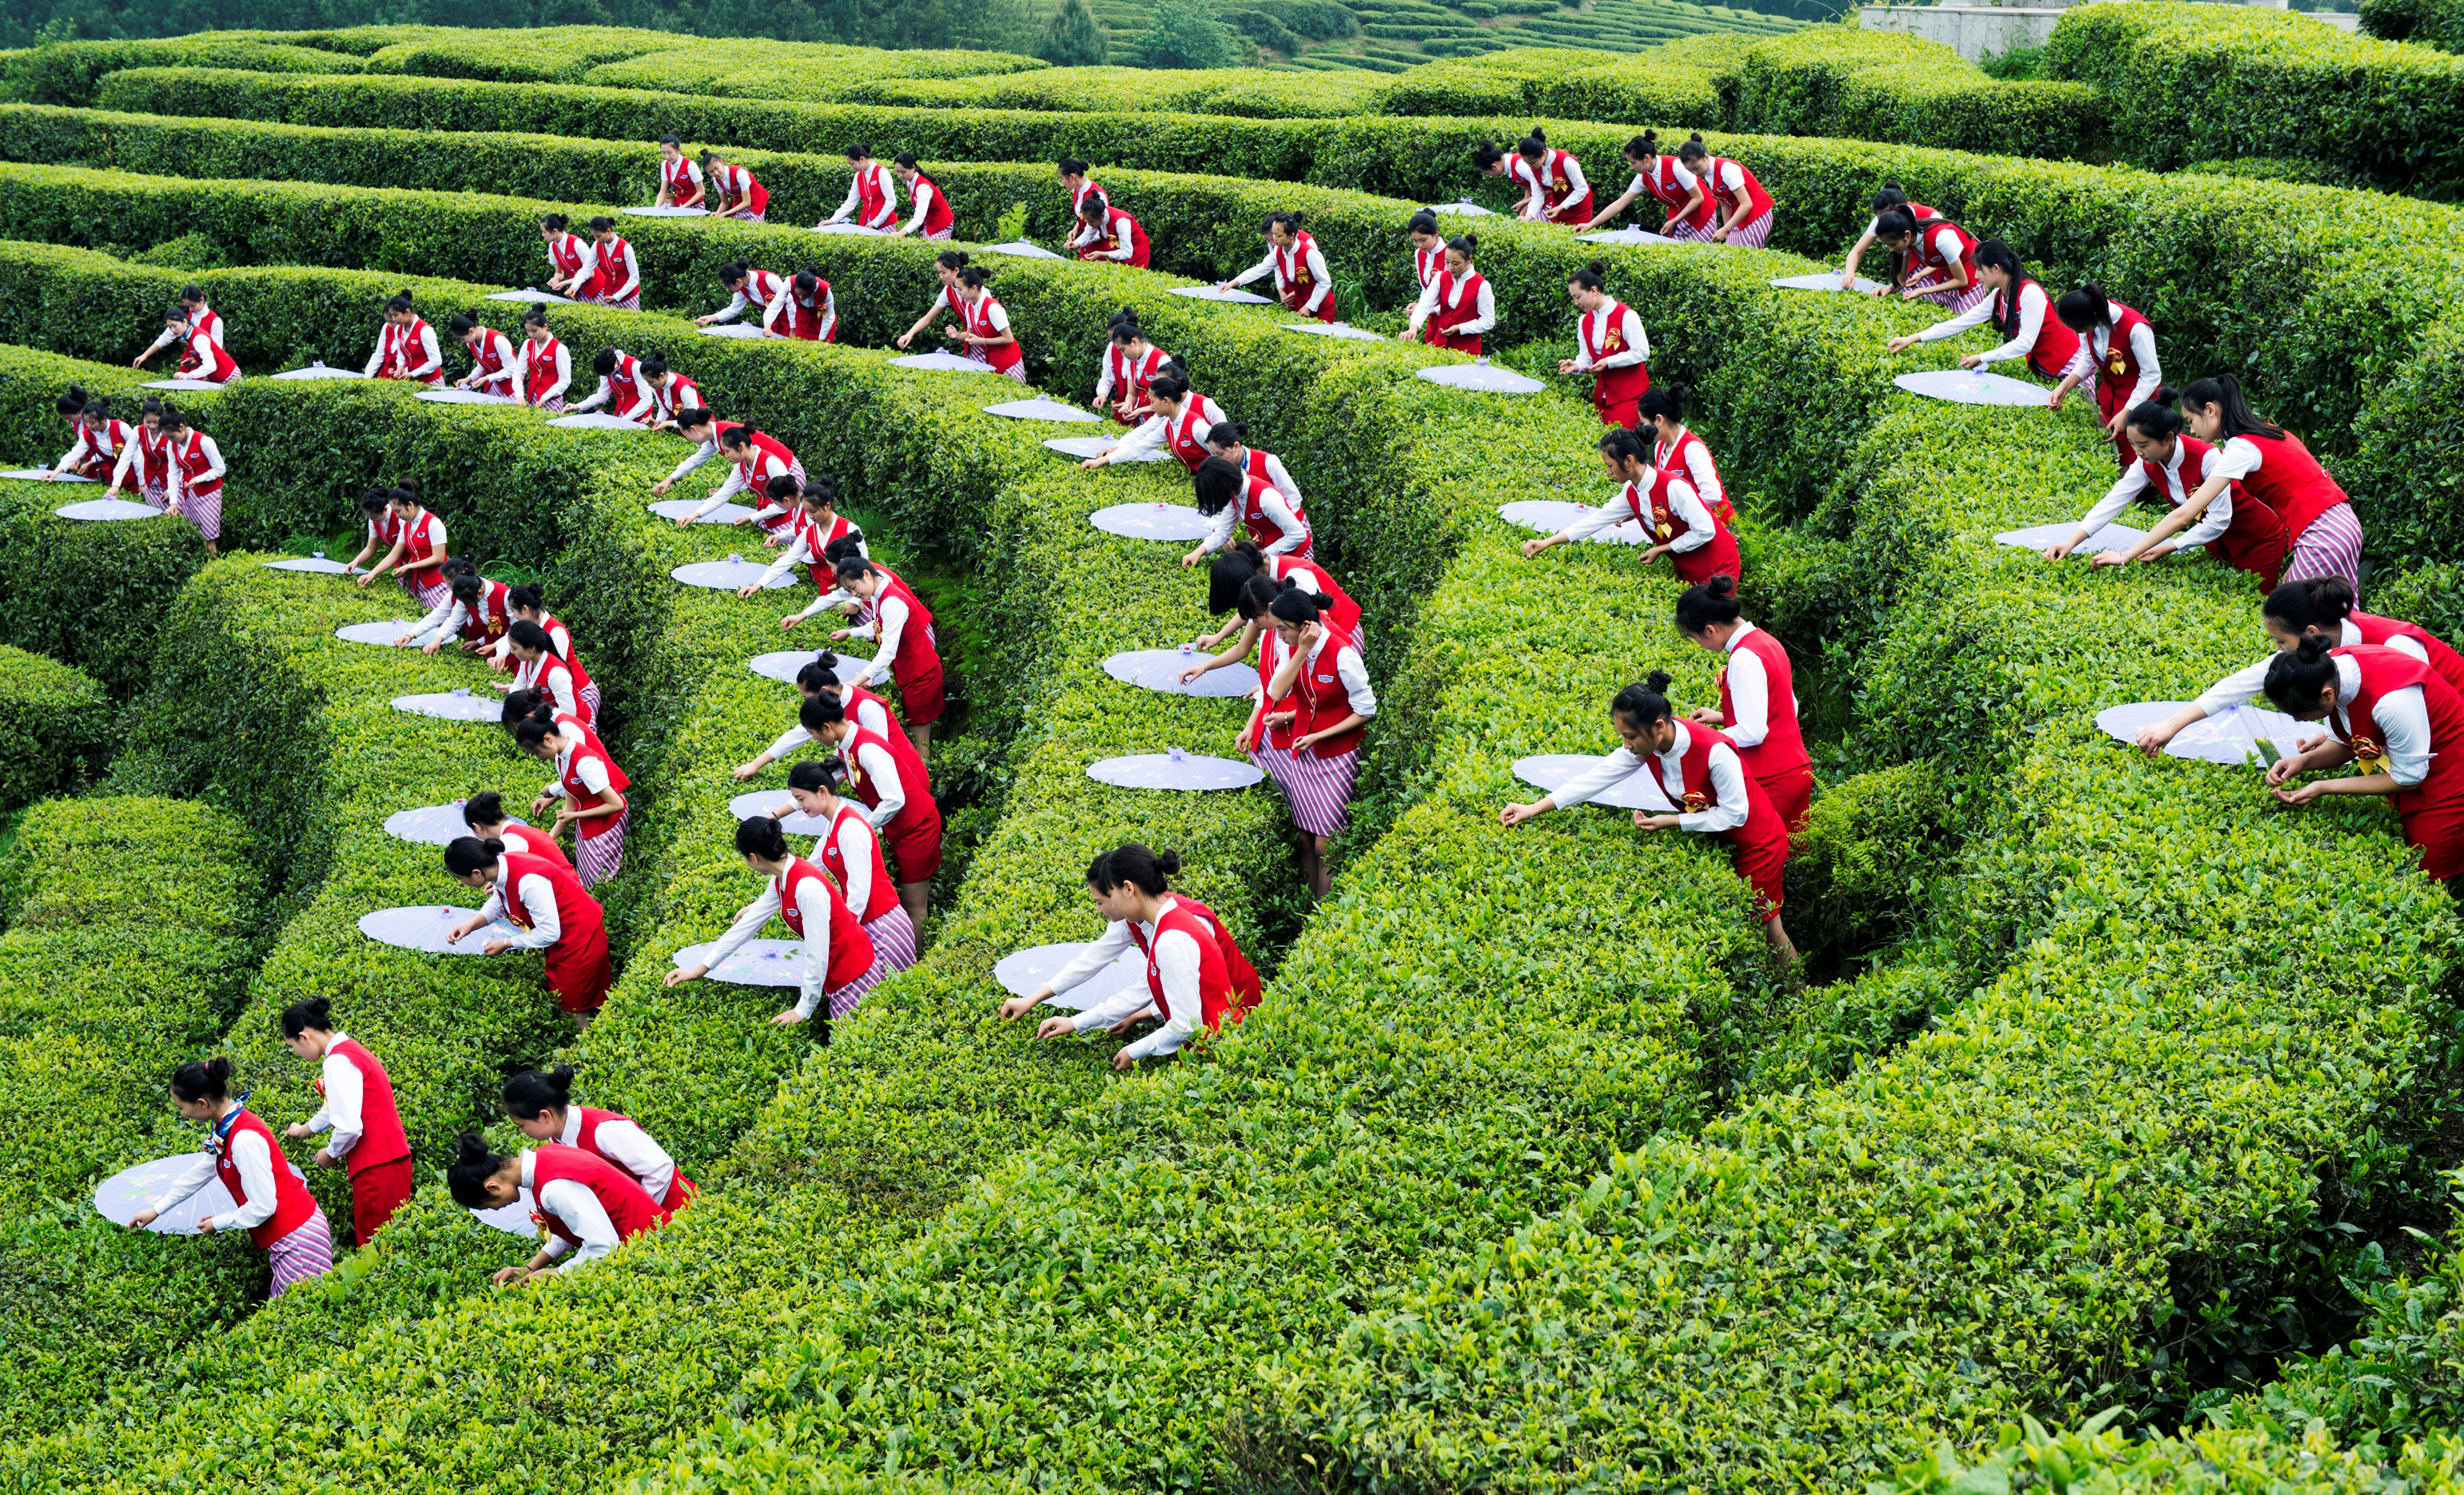 Students pick up tea leaves during an event to promote local eco-tourism at a plantation, in Chongqing, April 30, 2016.